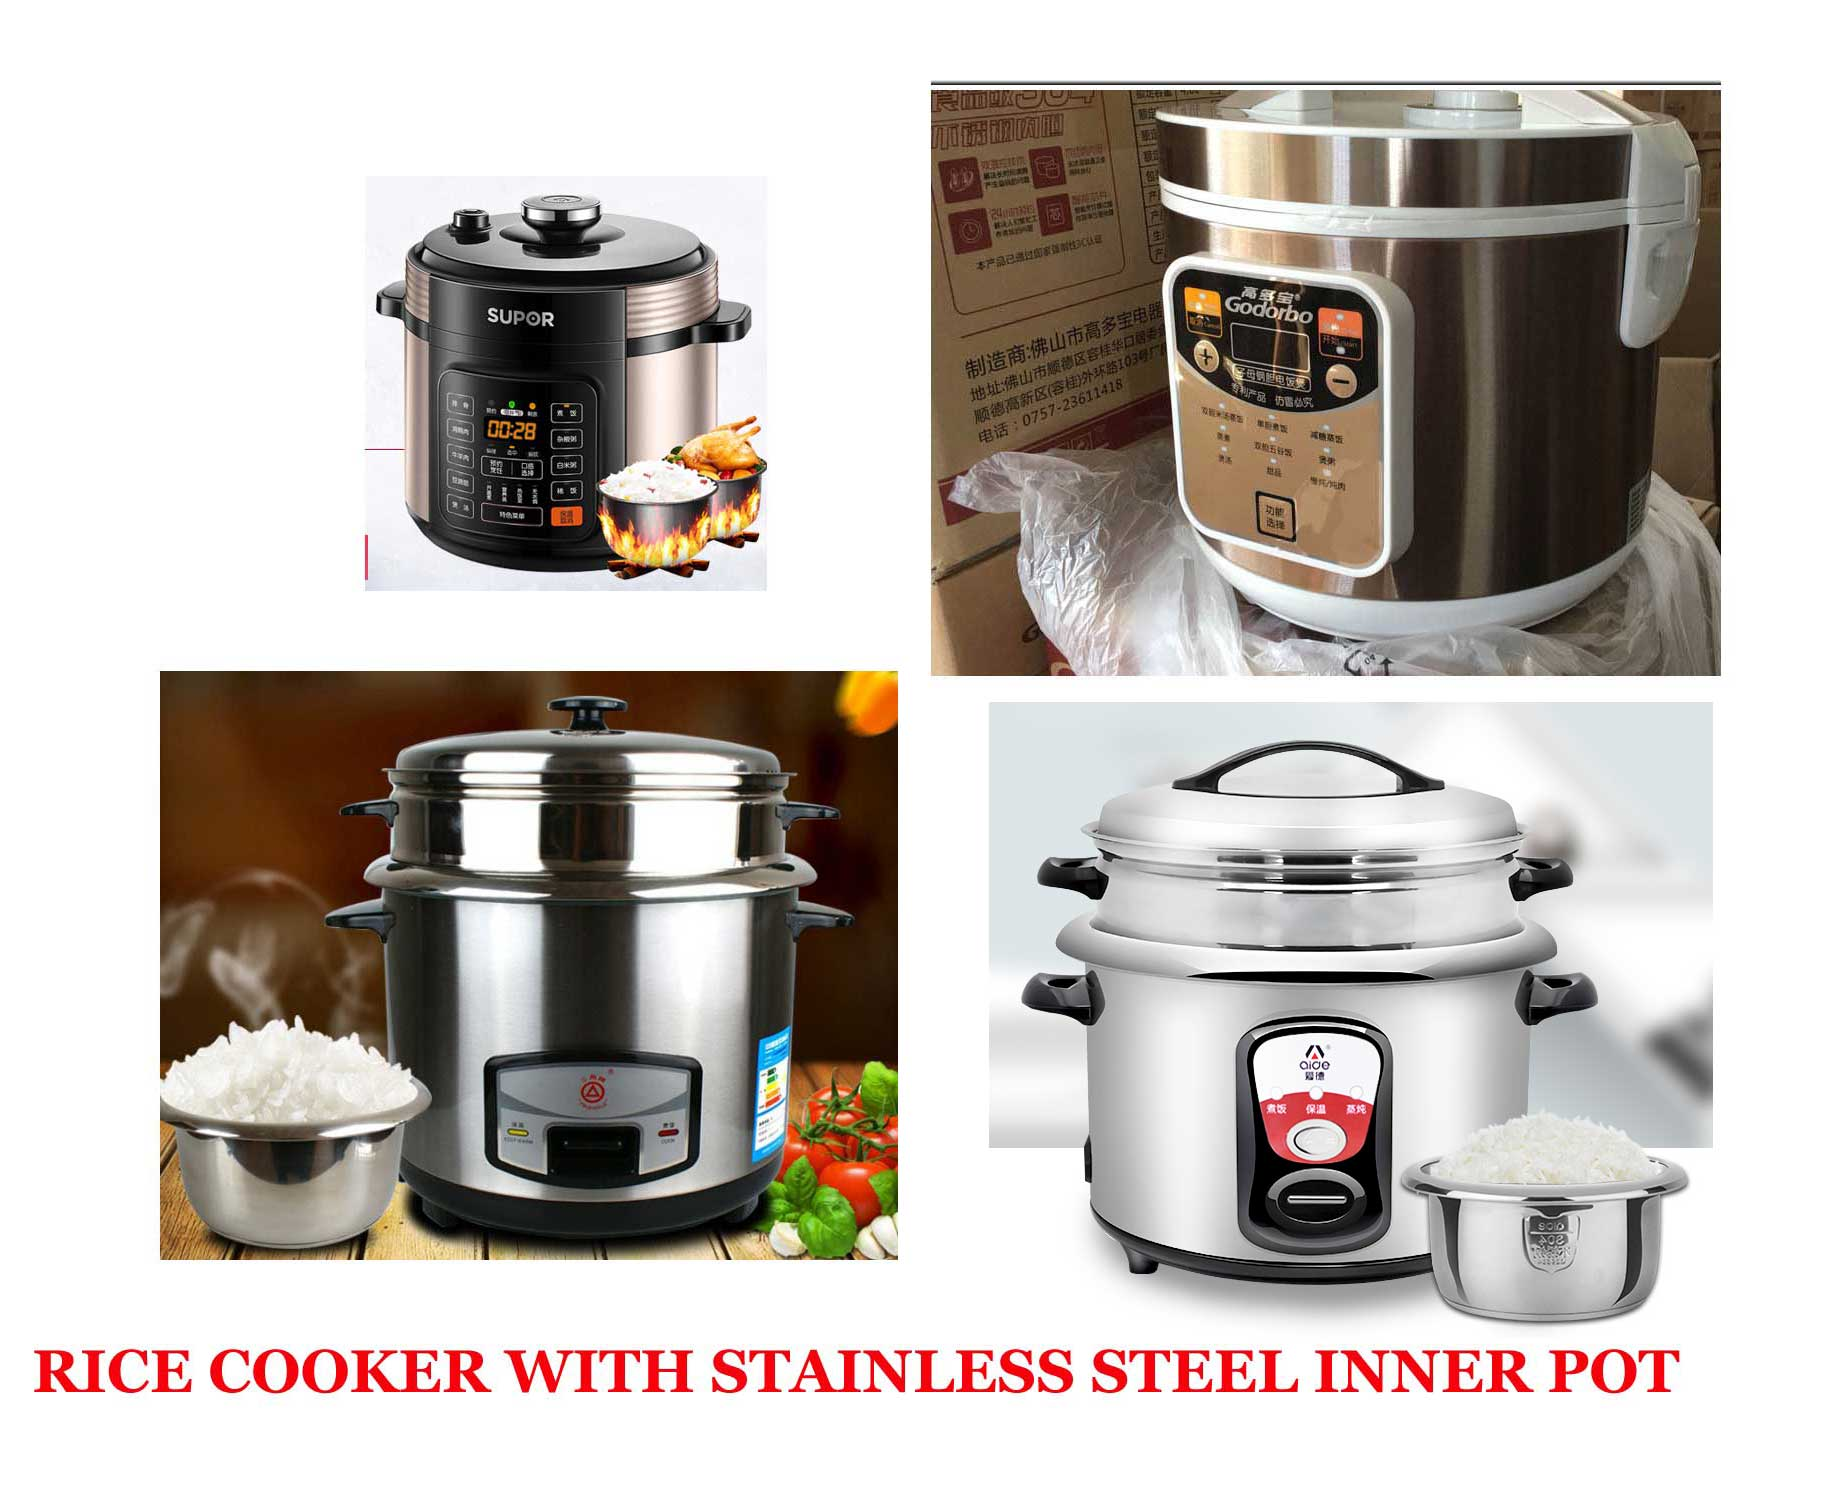 Rice Cooker With Stainless Steel Inner Pot